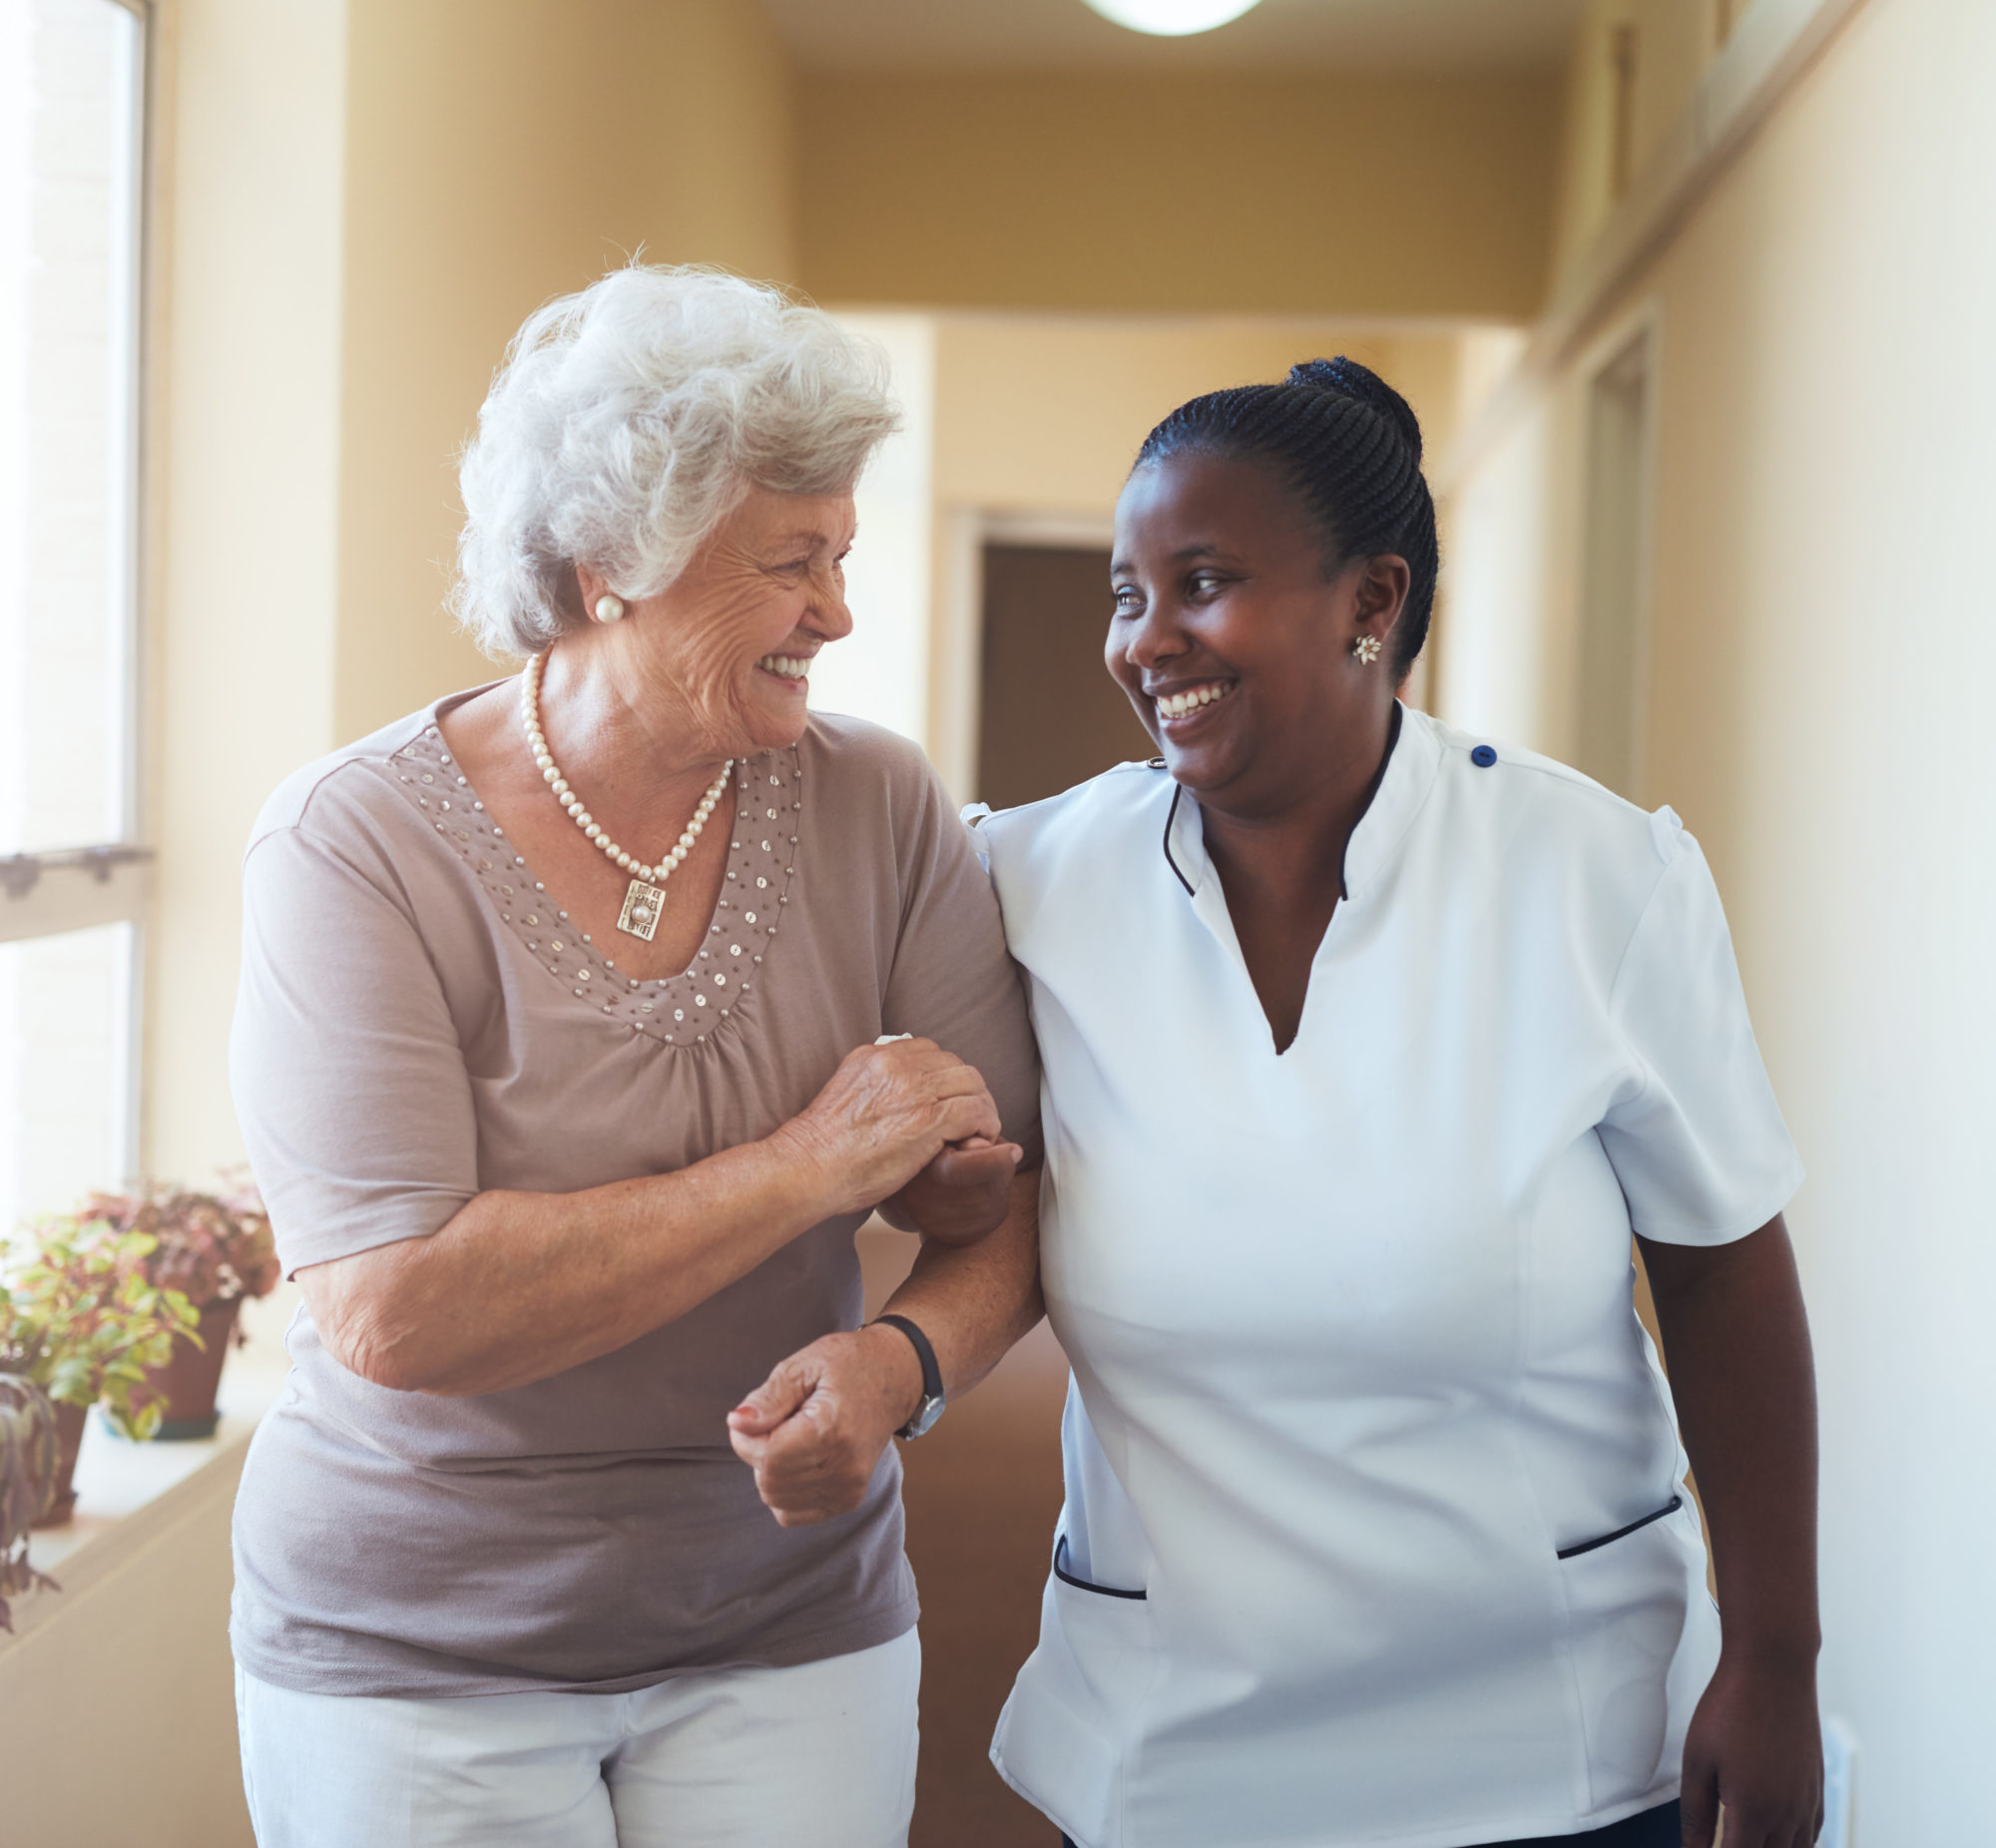 A nurse and patient walking together and smiling